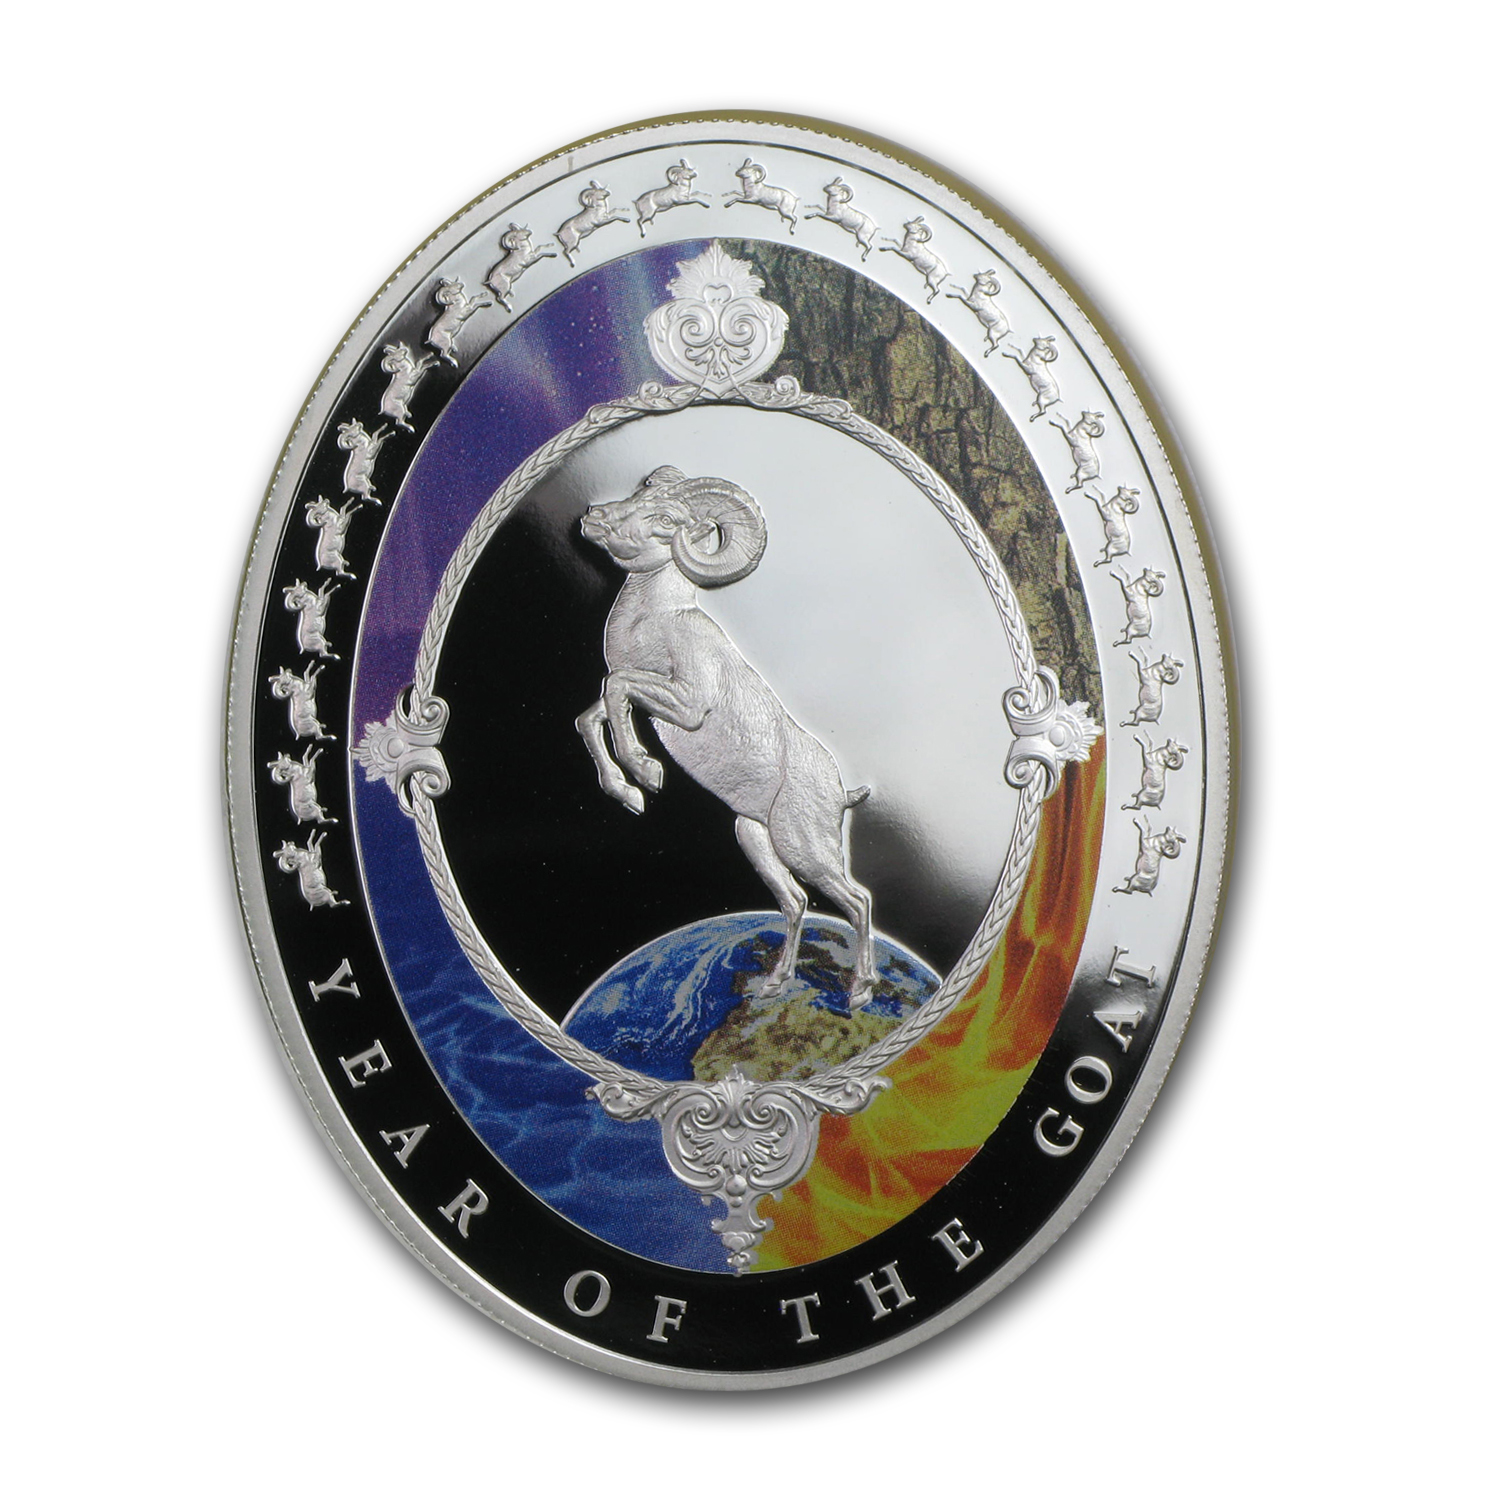 2015 Tokelau 1 oz Silver Year of the Goat Elements Proof (Oval)